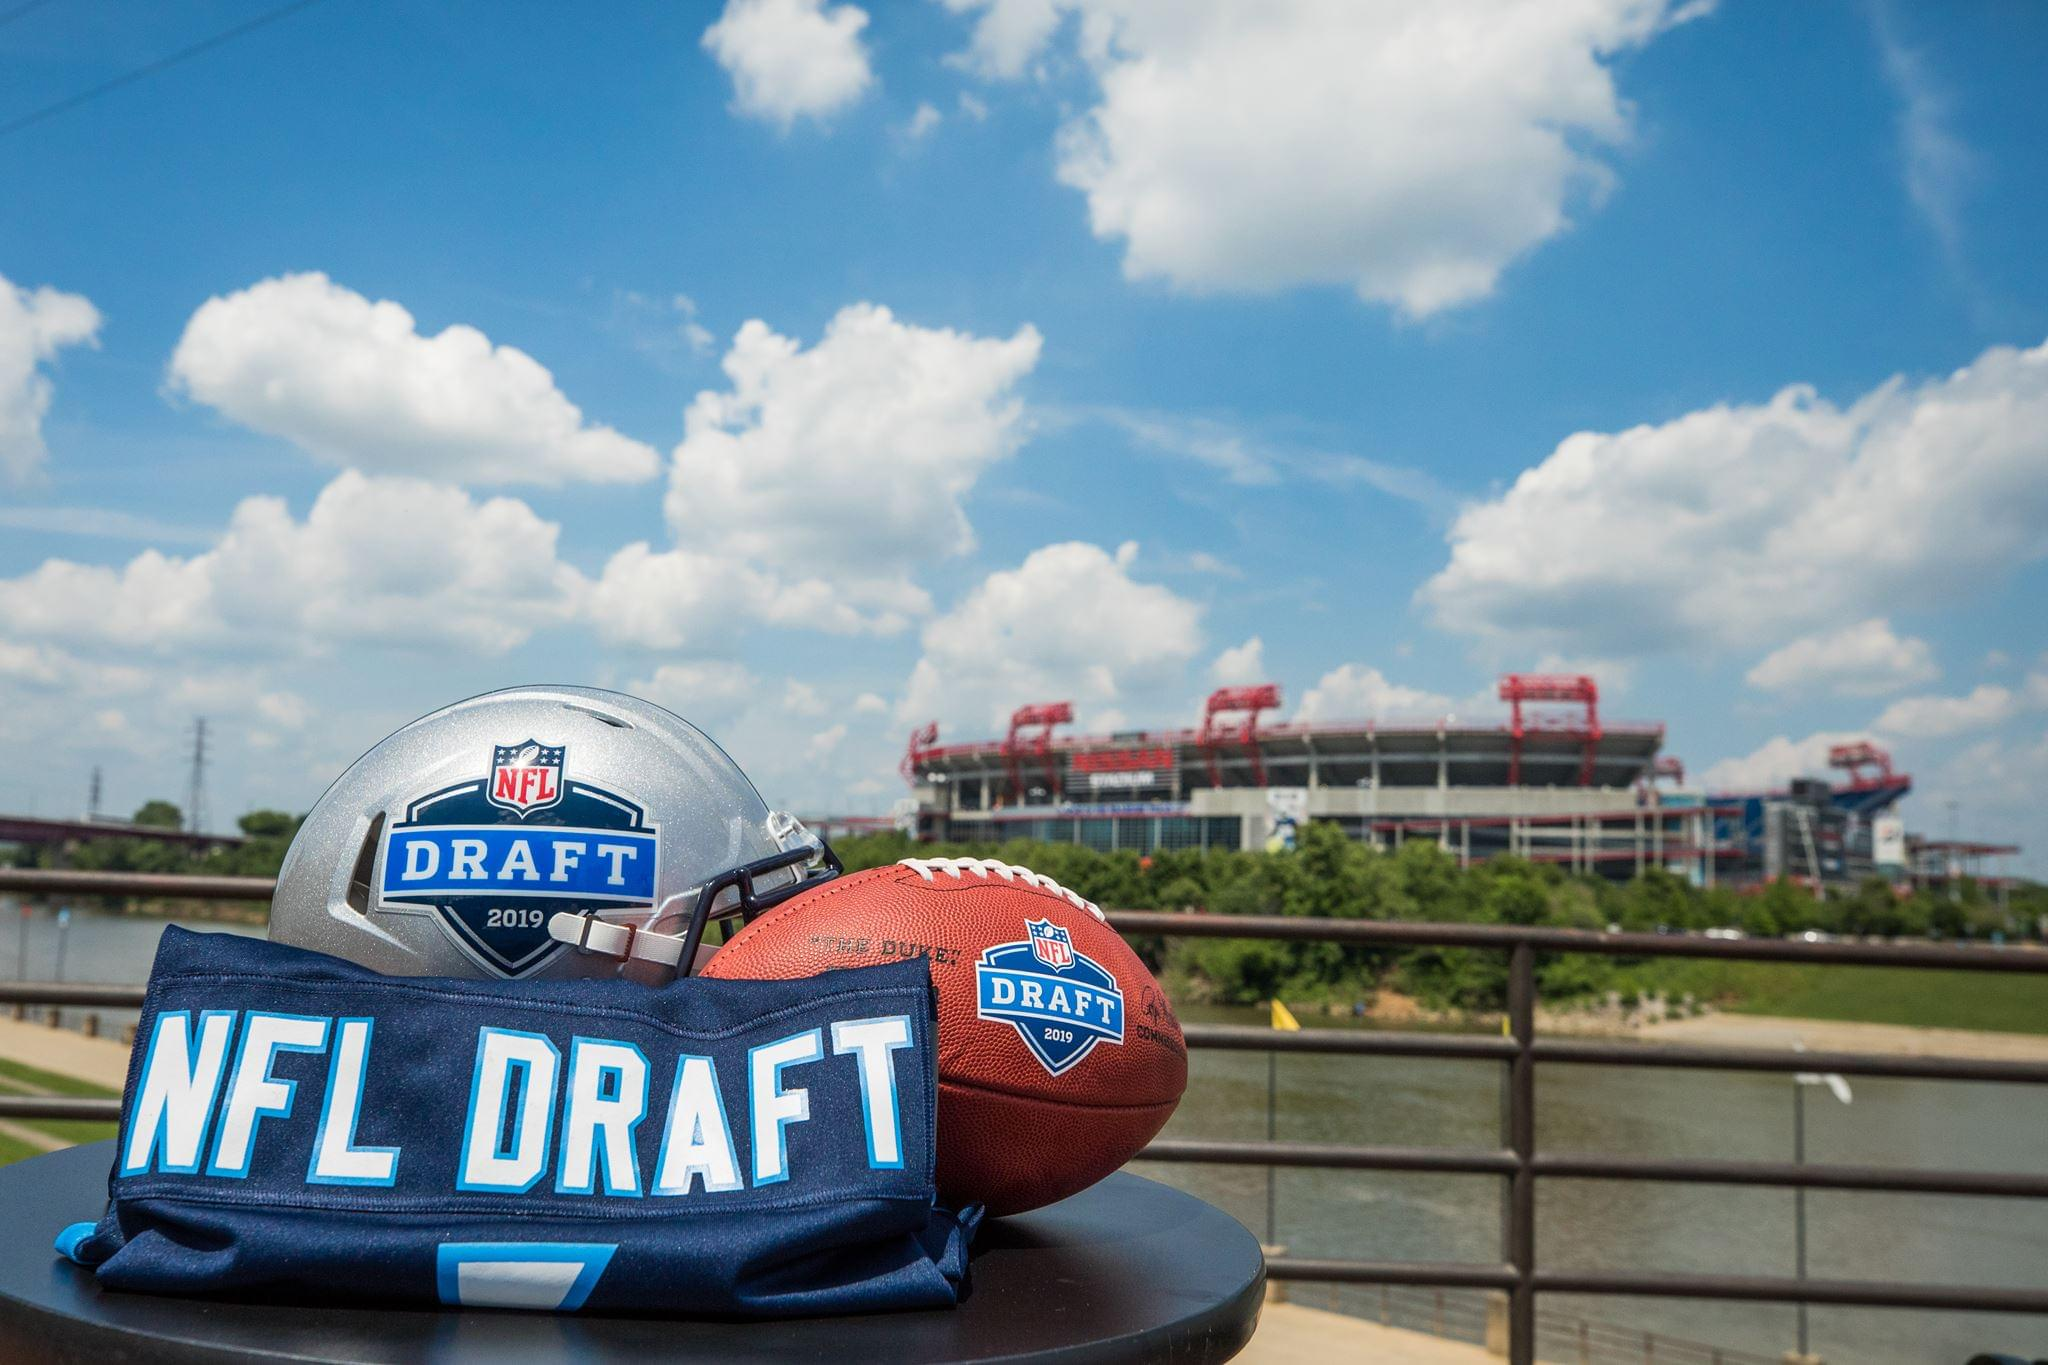 NFL Draft Takes Over Music City!